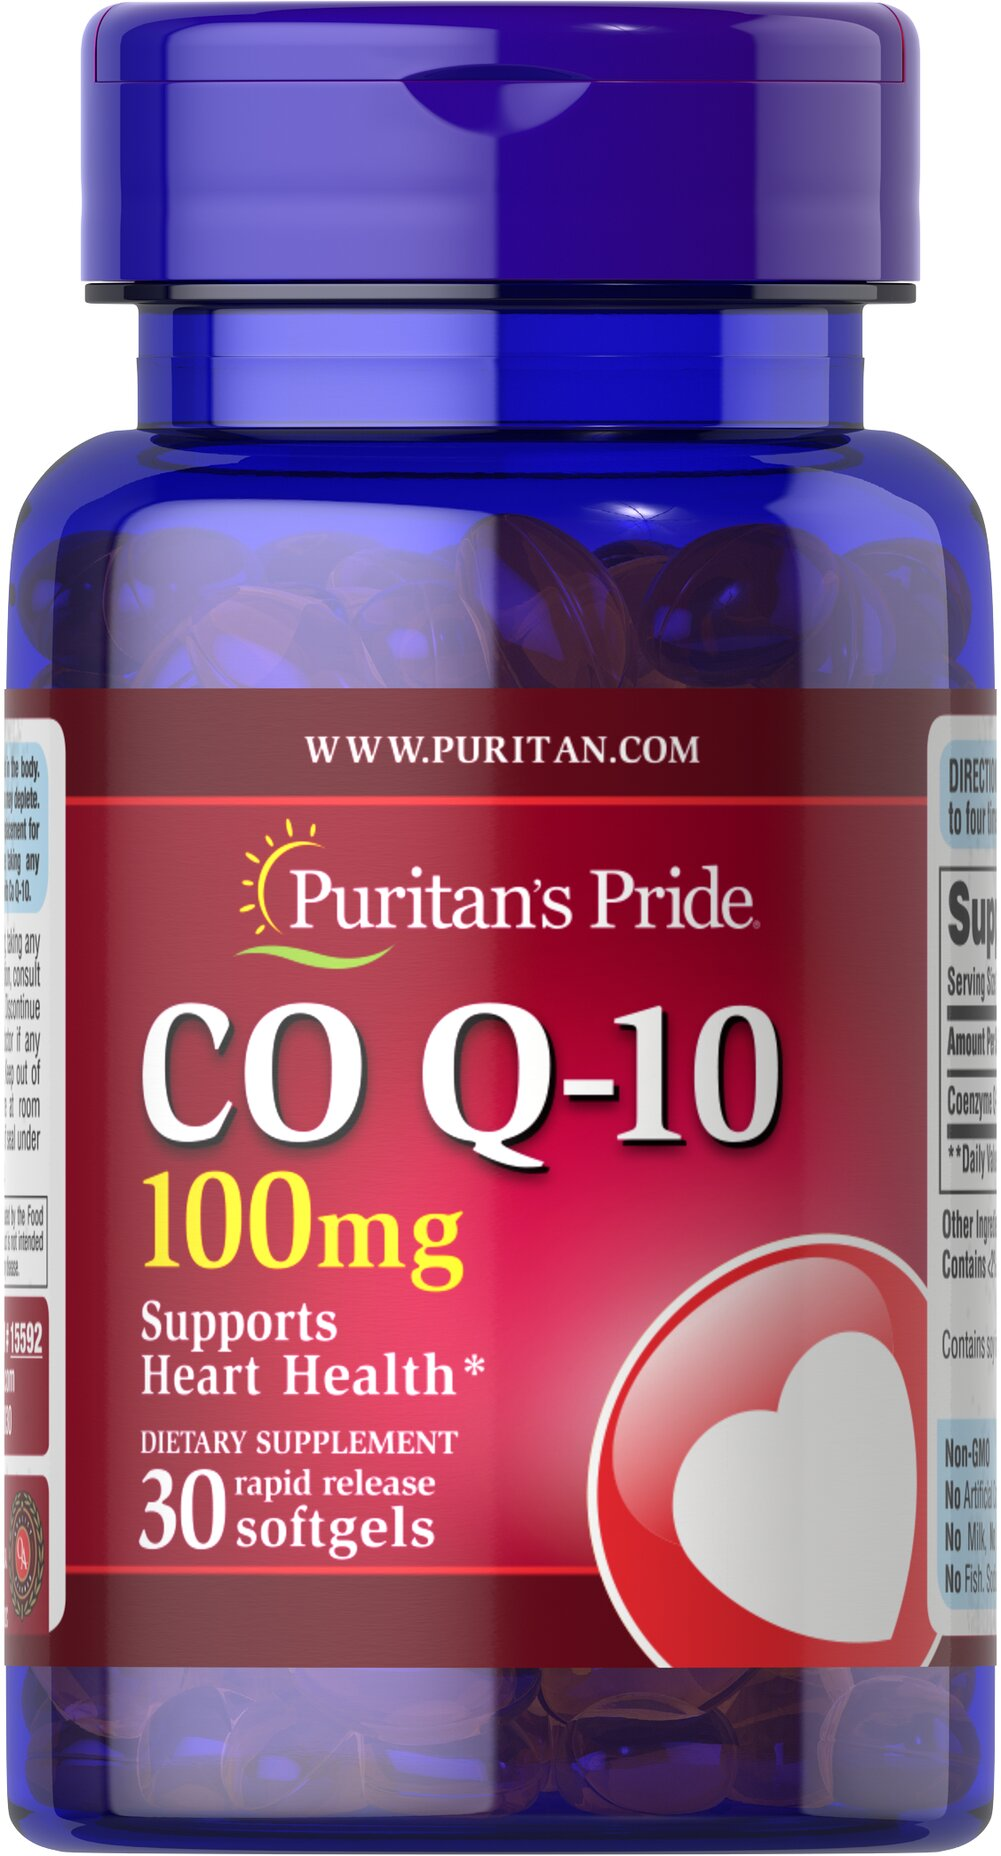 Co Q-10 100 mg <p>Puritan's Pride Q-Sorb™ Co Q-10 provides antioxidant support for your heart and ensures potency and purity.** </p> <p>Our Q-Sorb™ Co Q-10 is hermetically sealed in rapid release softgels to provide superior absorption.</p> <p>Contributes to your heart and cardiovascular wellness**</p> <p>Helps support blood pressure levels already within a normal range**</p> <p>Promotes energy production within your heart, brain, and muscles